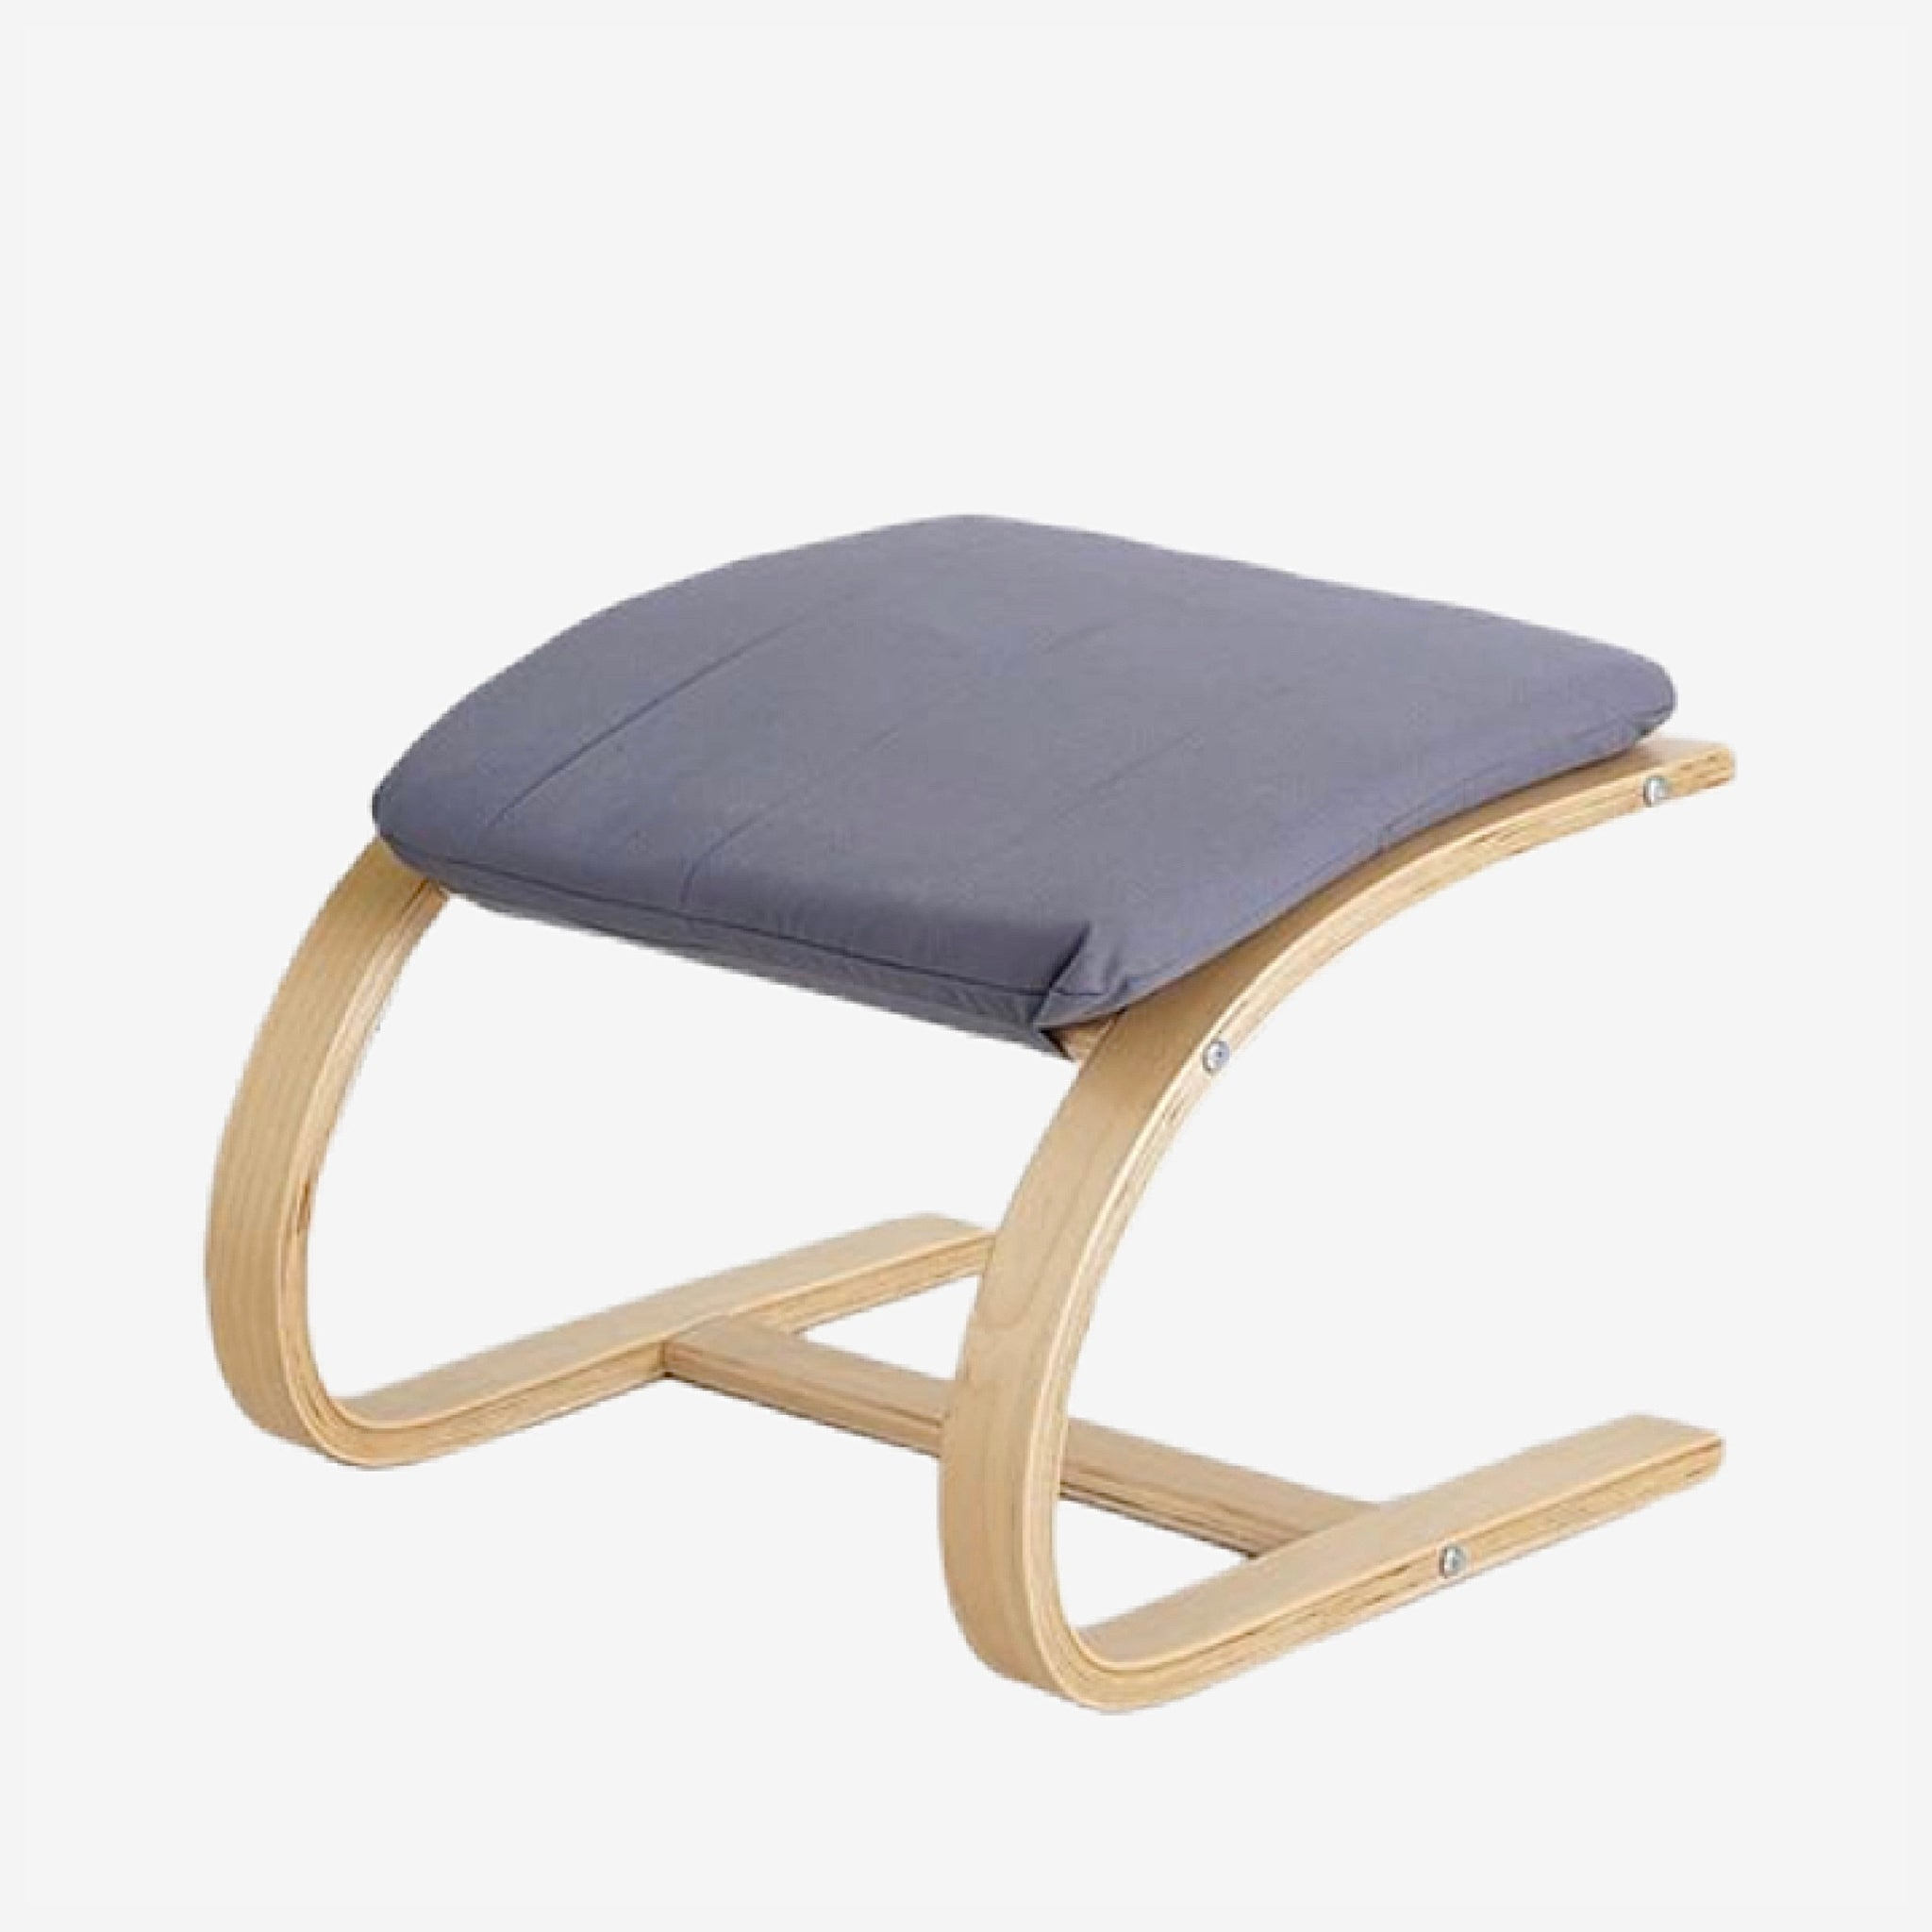 Contemporary Wooden Footstool Comfortable Dusty Blue Fabric Cushion Ottoman Chair Small Plywood Wood Footrest Stools Furniture